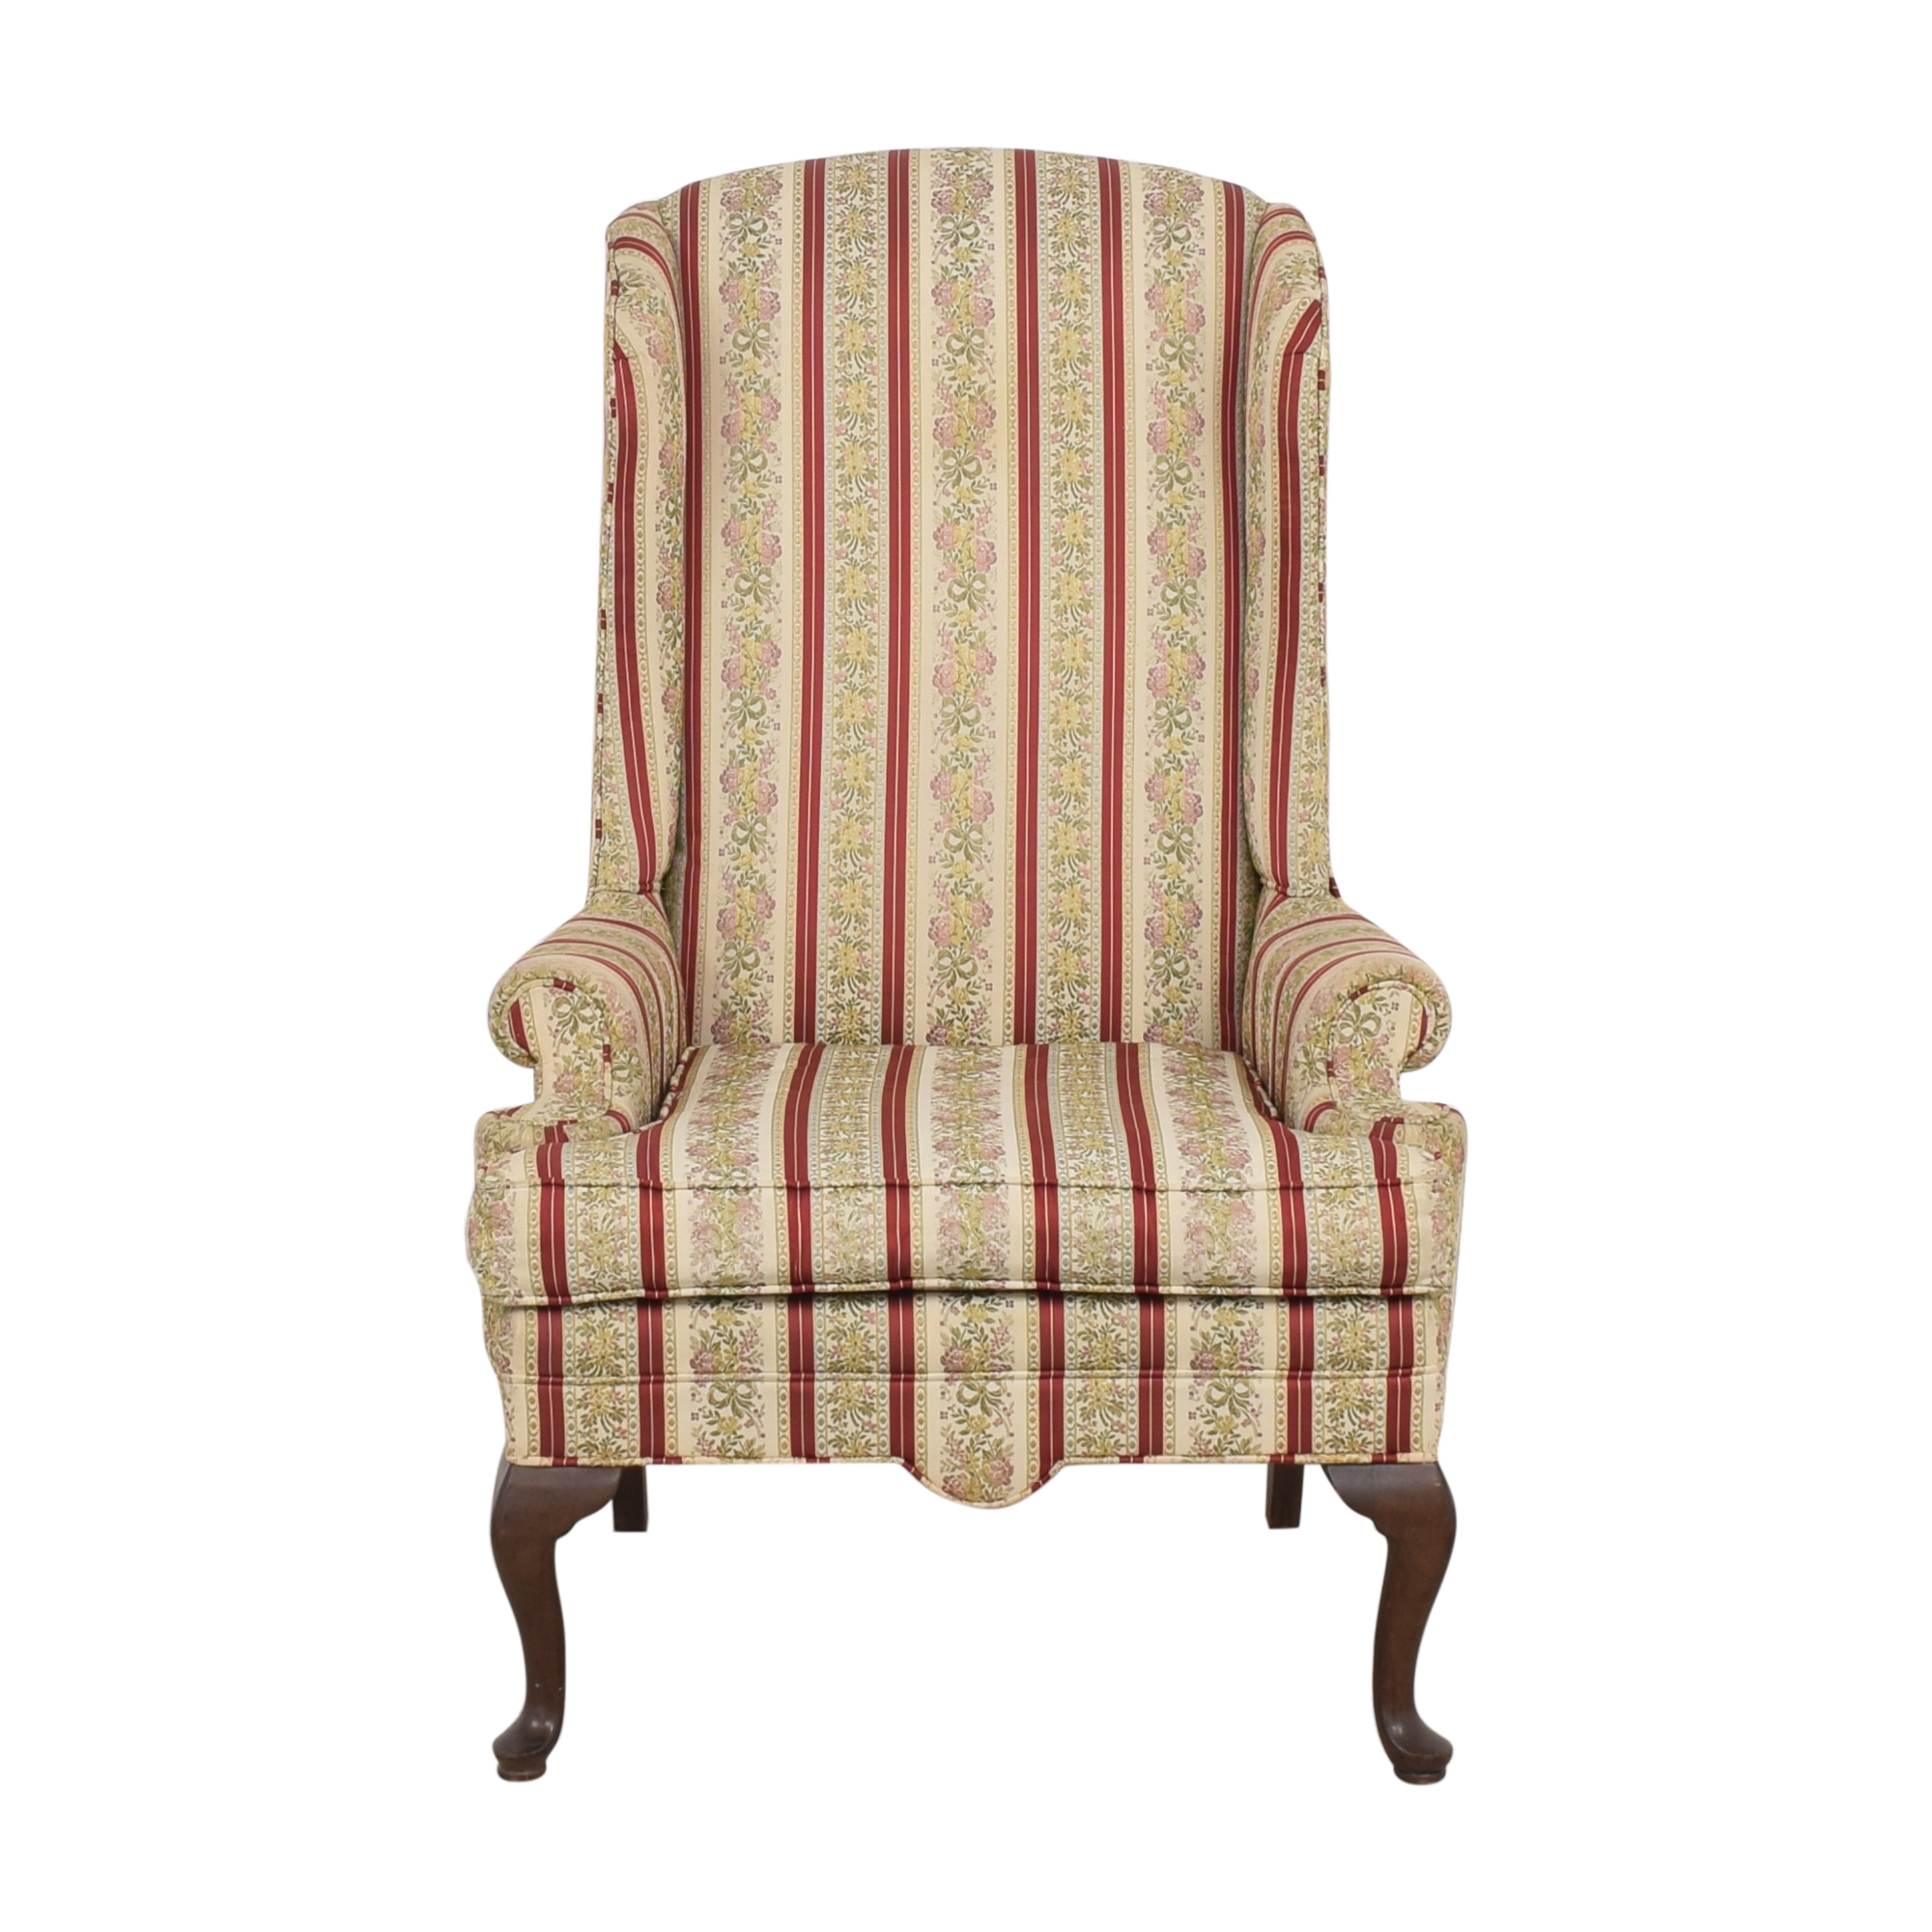 Ethan Allen Ethan Allen Wing Chair coupon